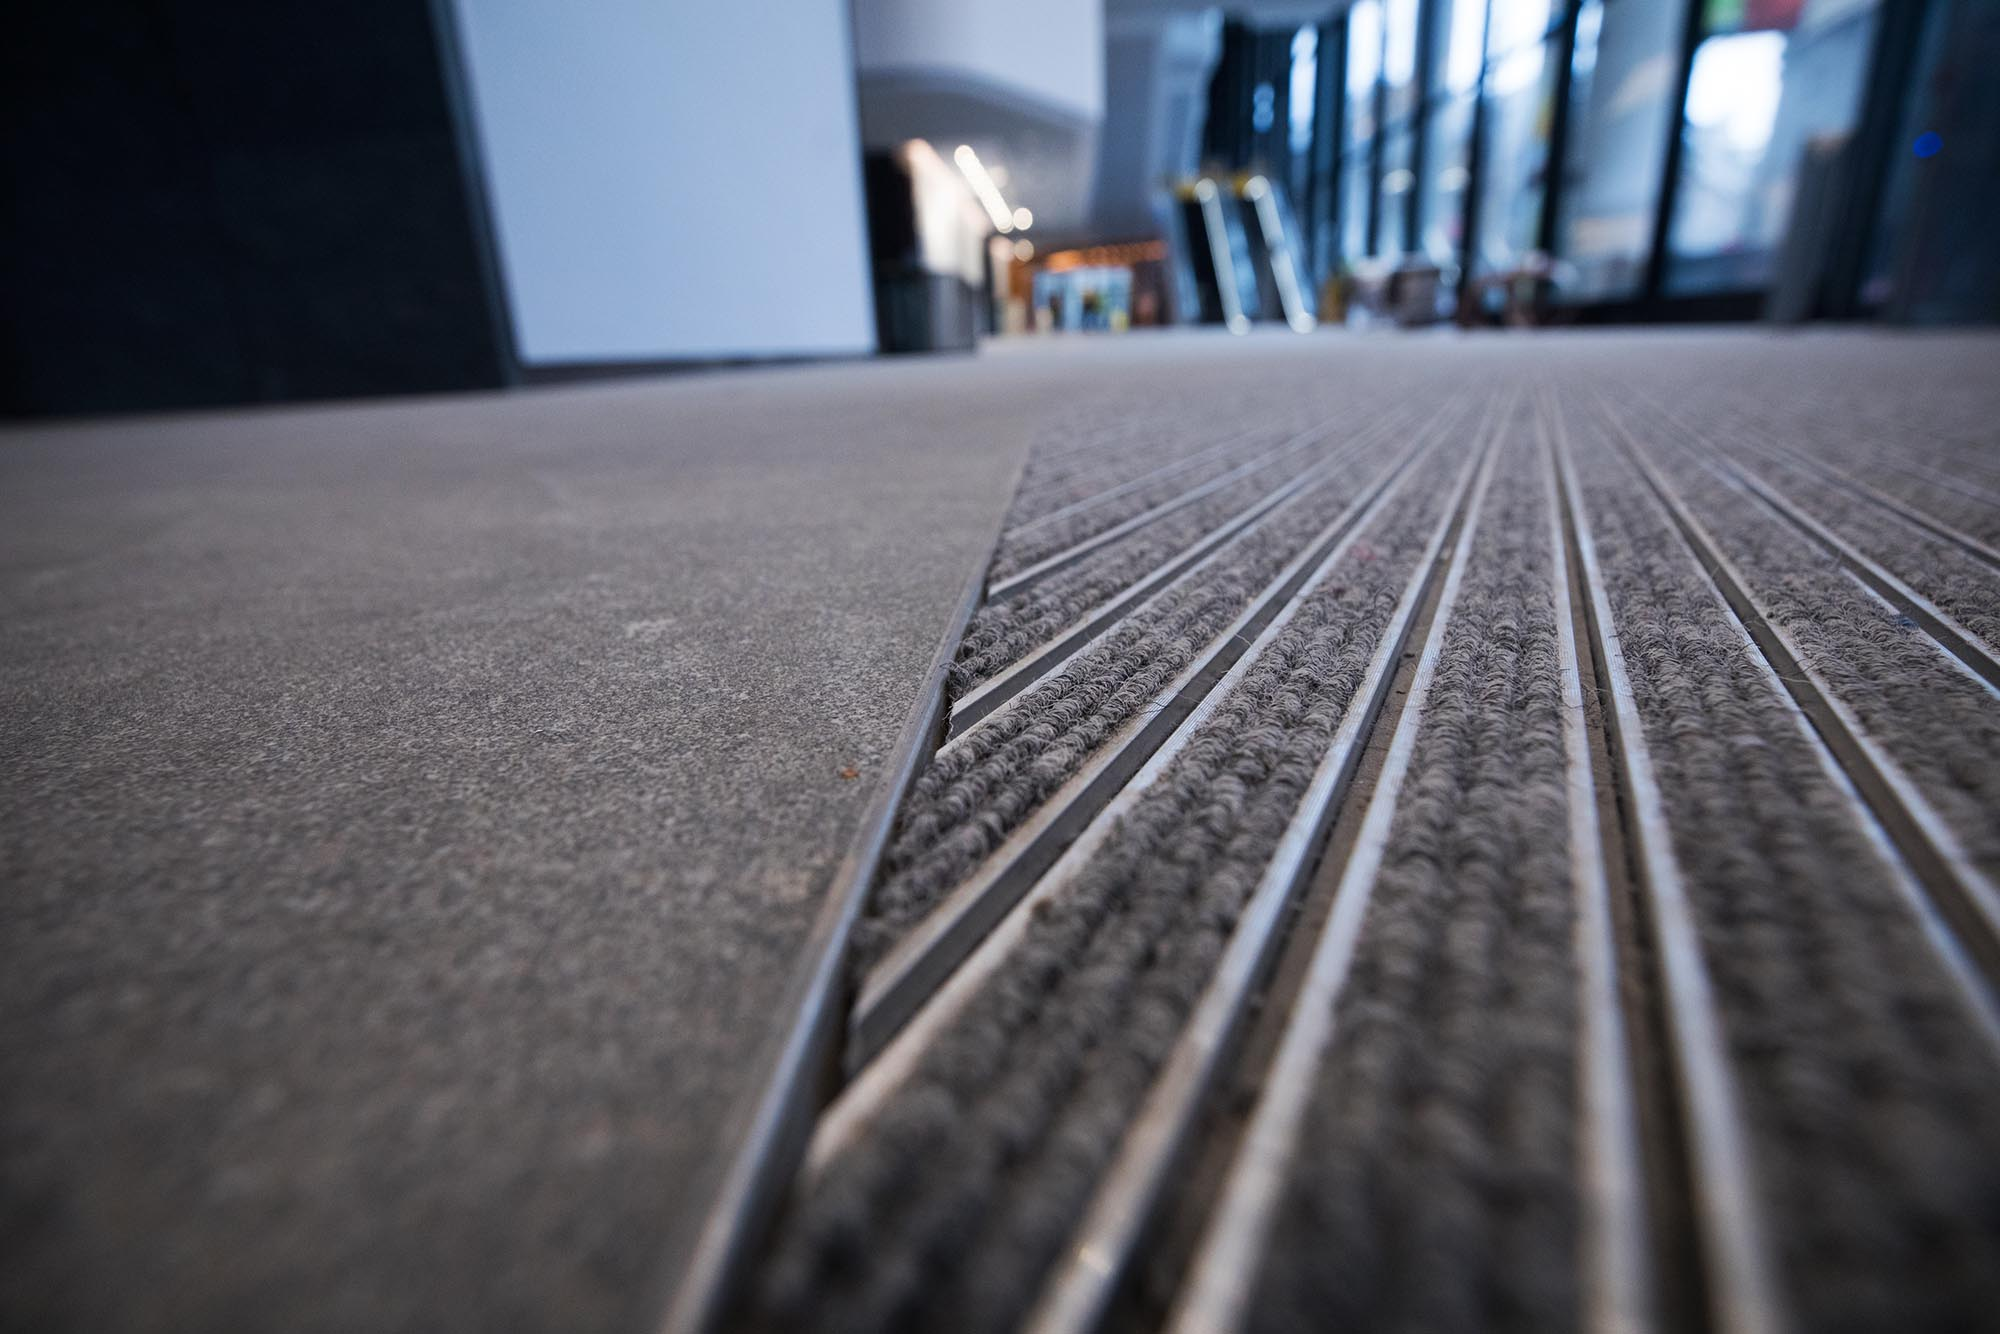 INTRAsystems' entrance matting at 22 Bishopgate blends in perfectly